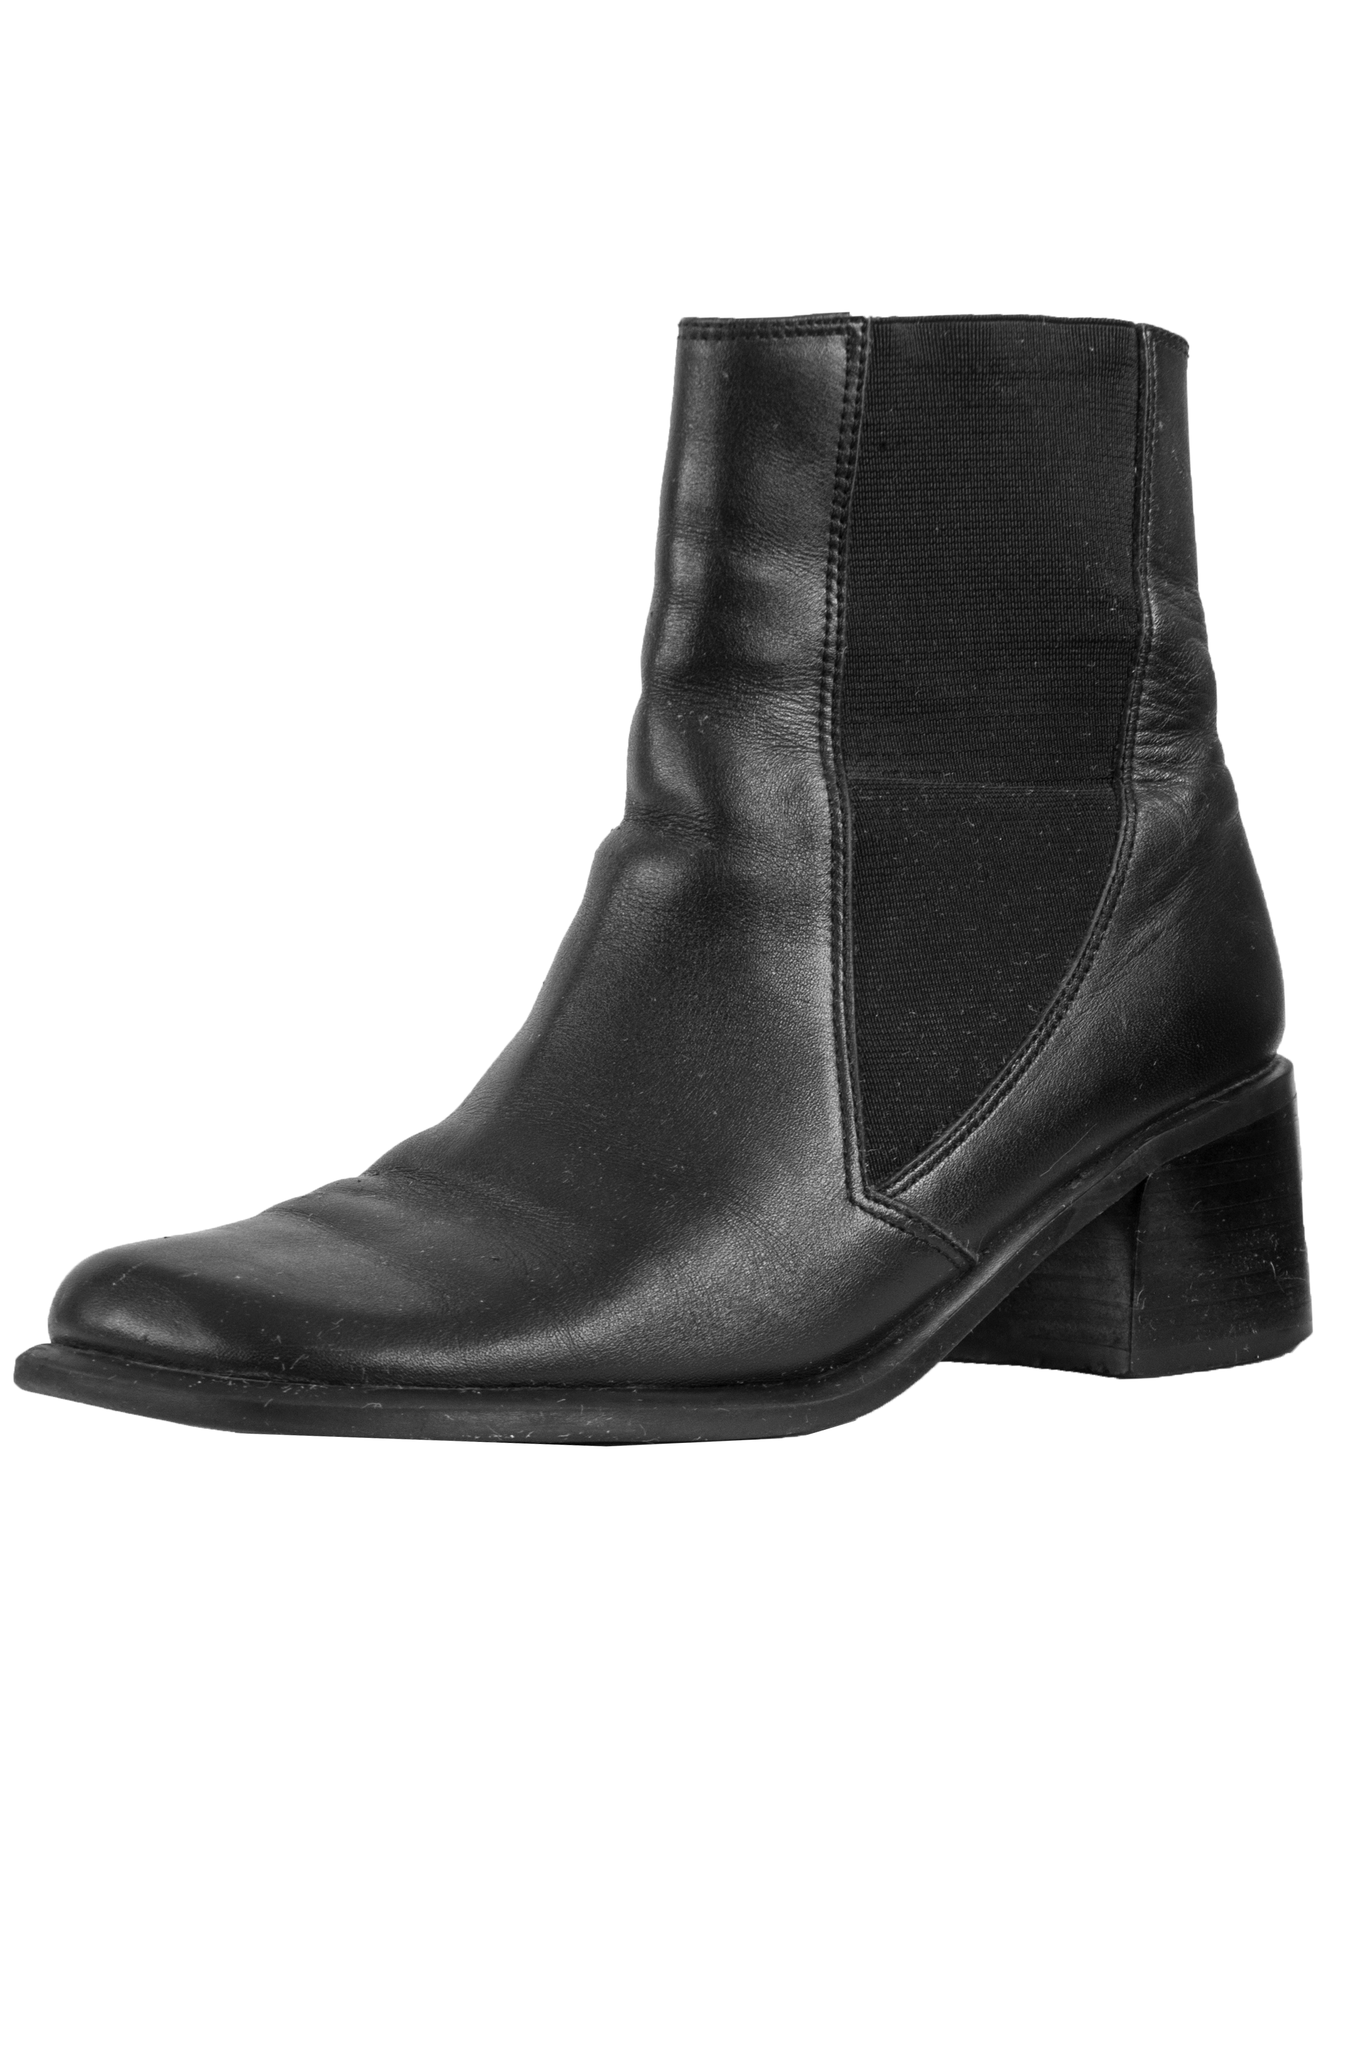 black leather ankle boots with stacked heel and square toe